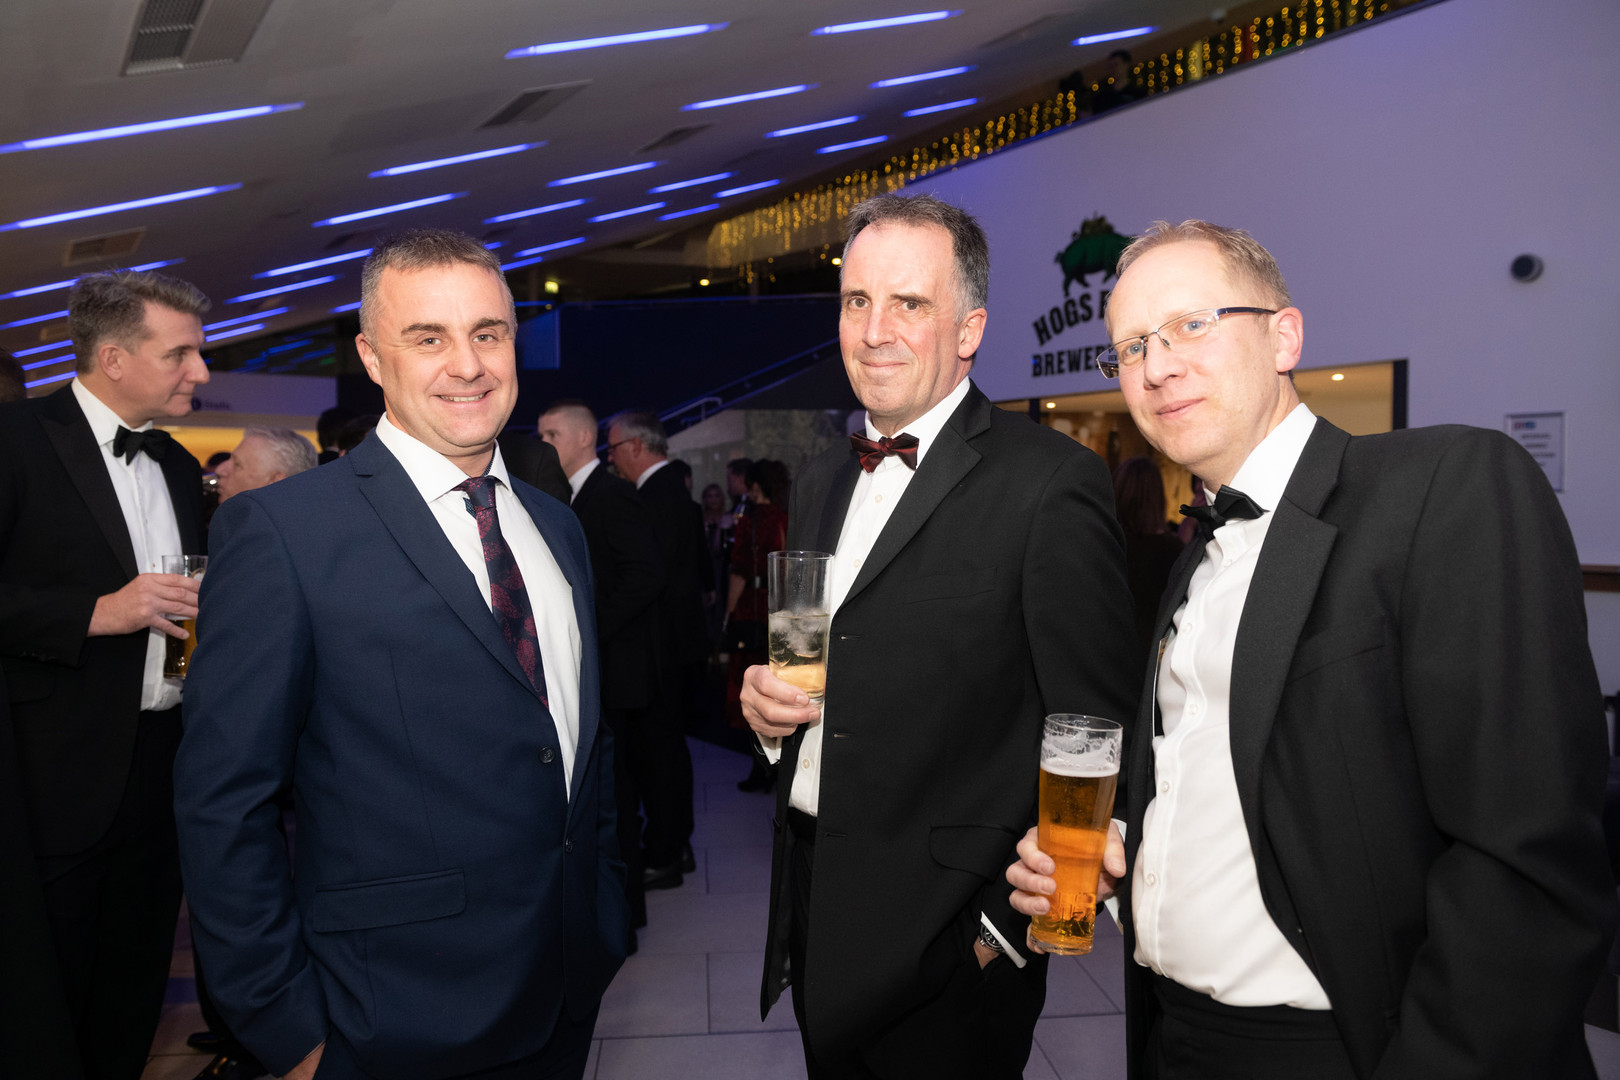 SurreyPropertyAwards_Nov2019_175.jpg